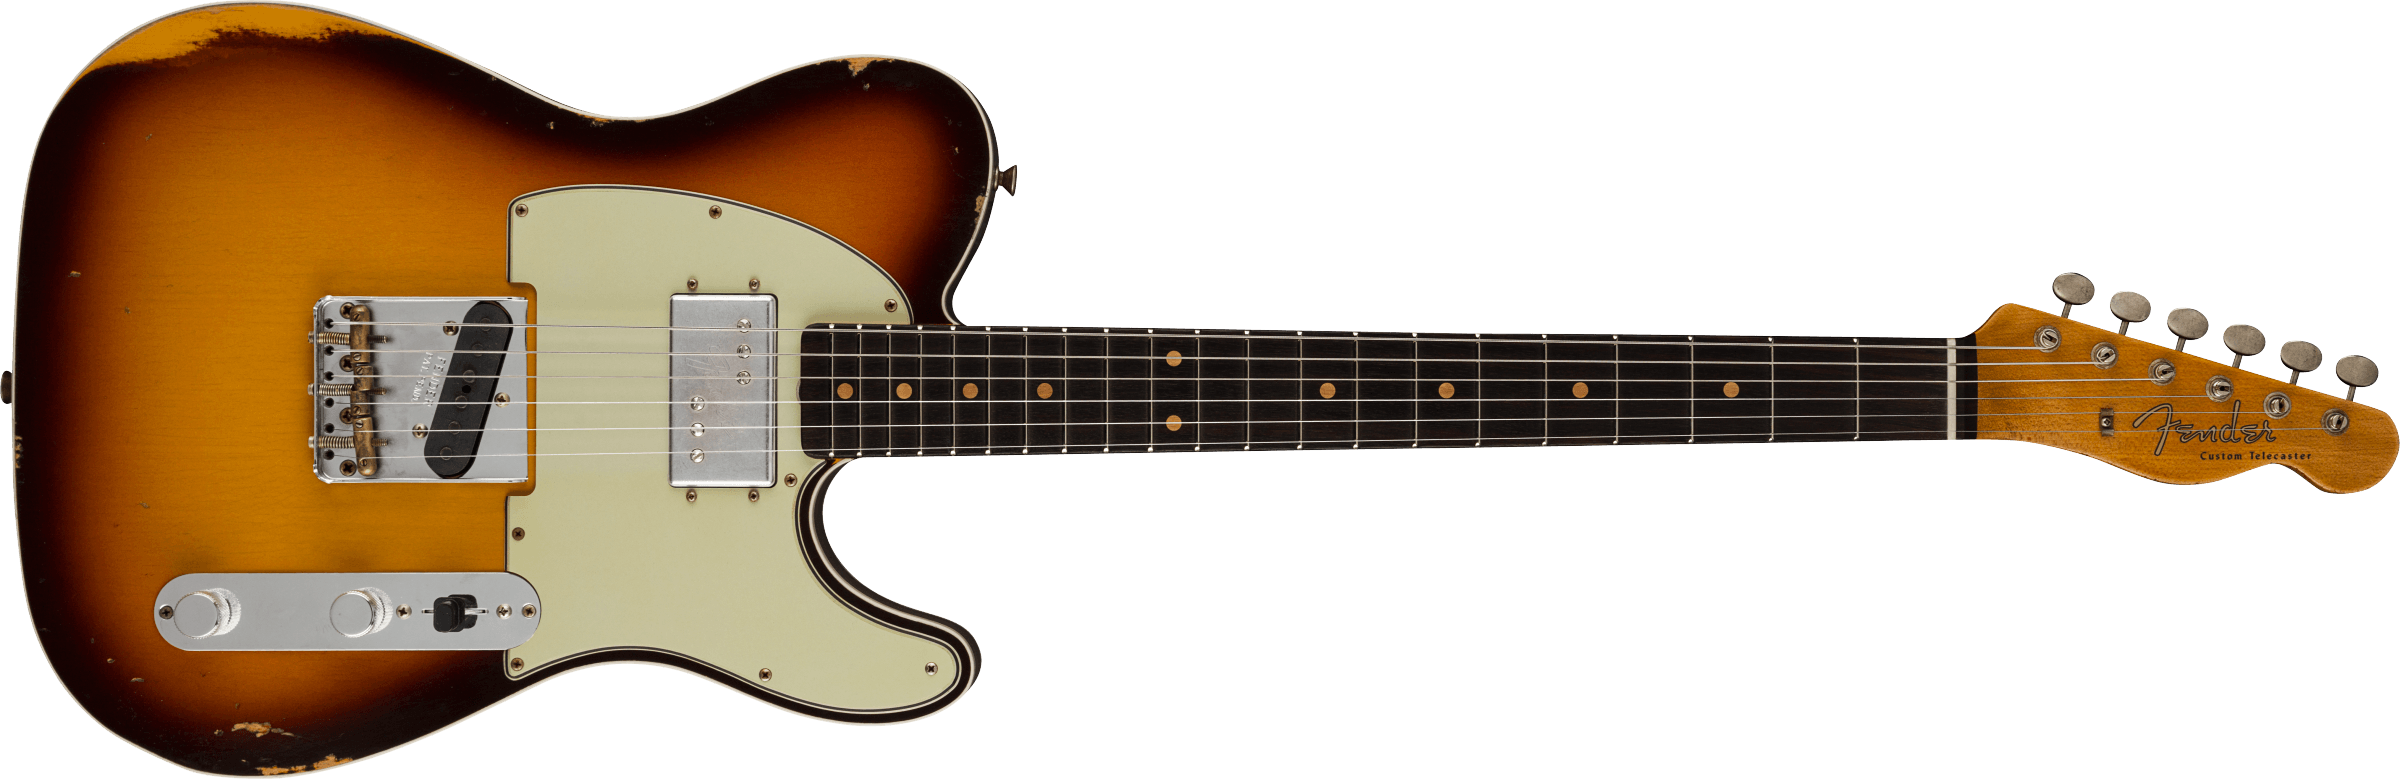 FENDER-Limited-Edition-Cunife-Tele-Custom-Relic-Rosewood-Fingerboard-Faded-Aged-Chocolate-3-Color-Sunburst-sku-571005151